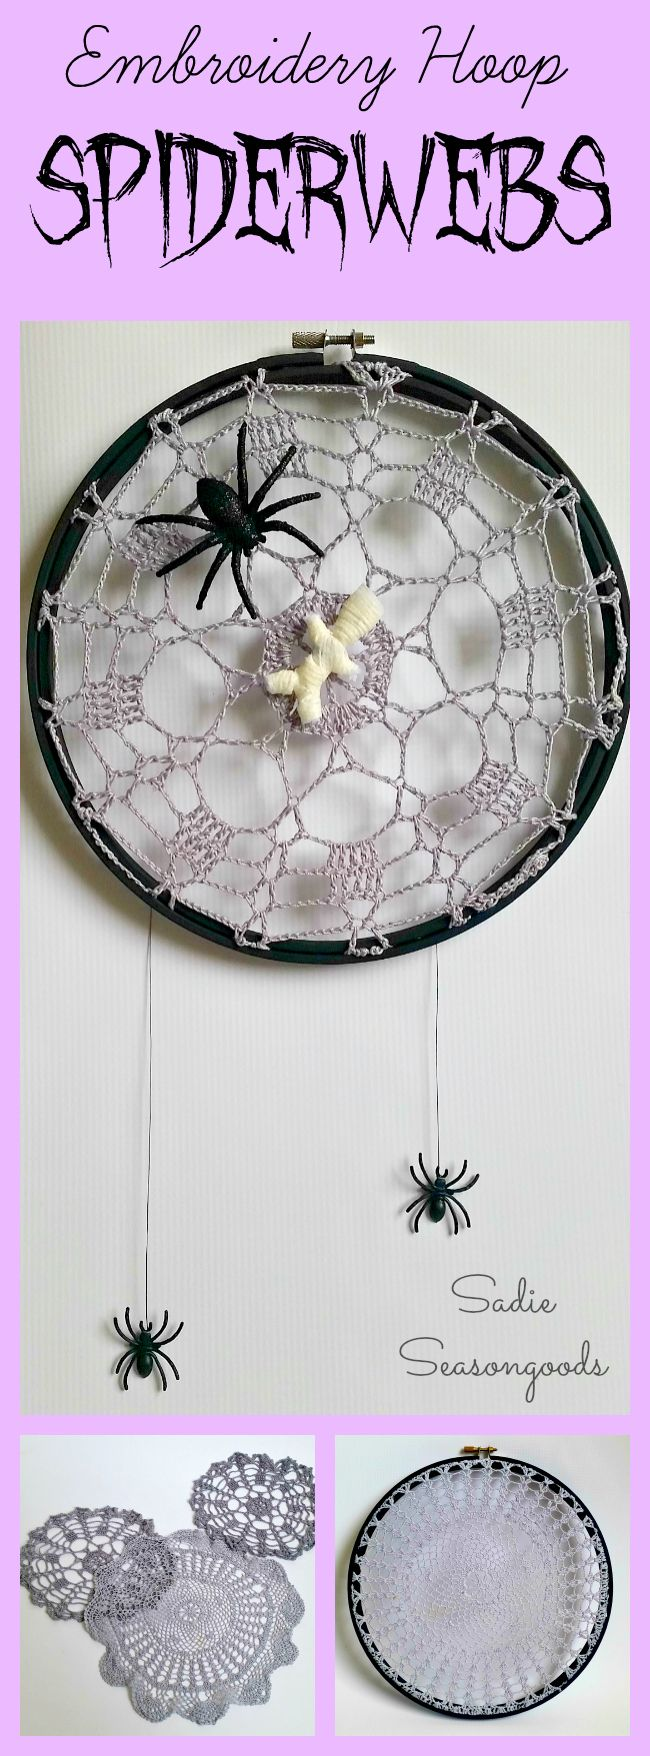 Looking for a super easy, super inexpensive Halloween upcycle / repurpose project? Why not raid Grandma's stash of old embroidery hoops and vintage crochet doilies, and turn them into a fun, spooky spiderweb? Paint the hoop black, dye the doily grey, and add creepy crawly spiders from the dollar store. Ta-da! The perfect Halloween spider web project. #SadieSeasongoods